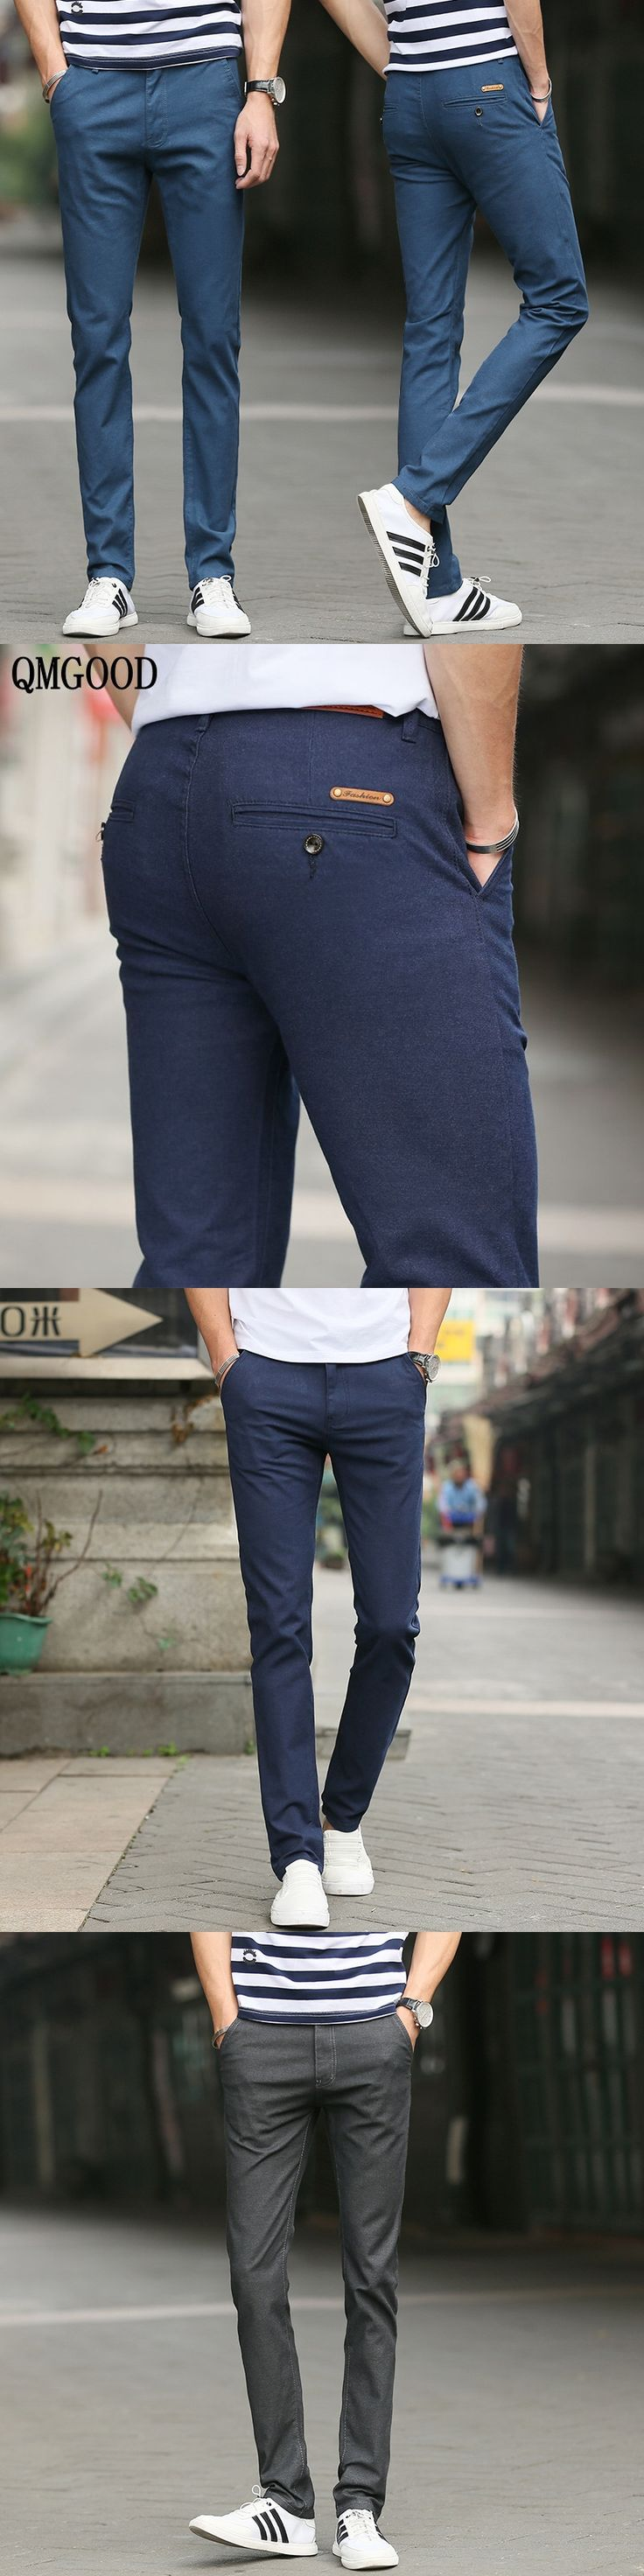 QMGOOD New Business Casual Pants Skinny Men Spring Summer Men's Cargo Pants 4 Color Cotton Straight Jeans Slim Trousers 28-38